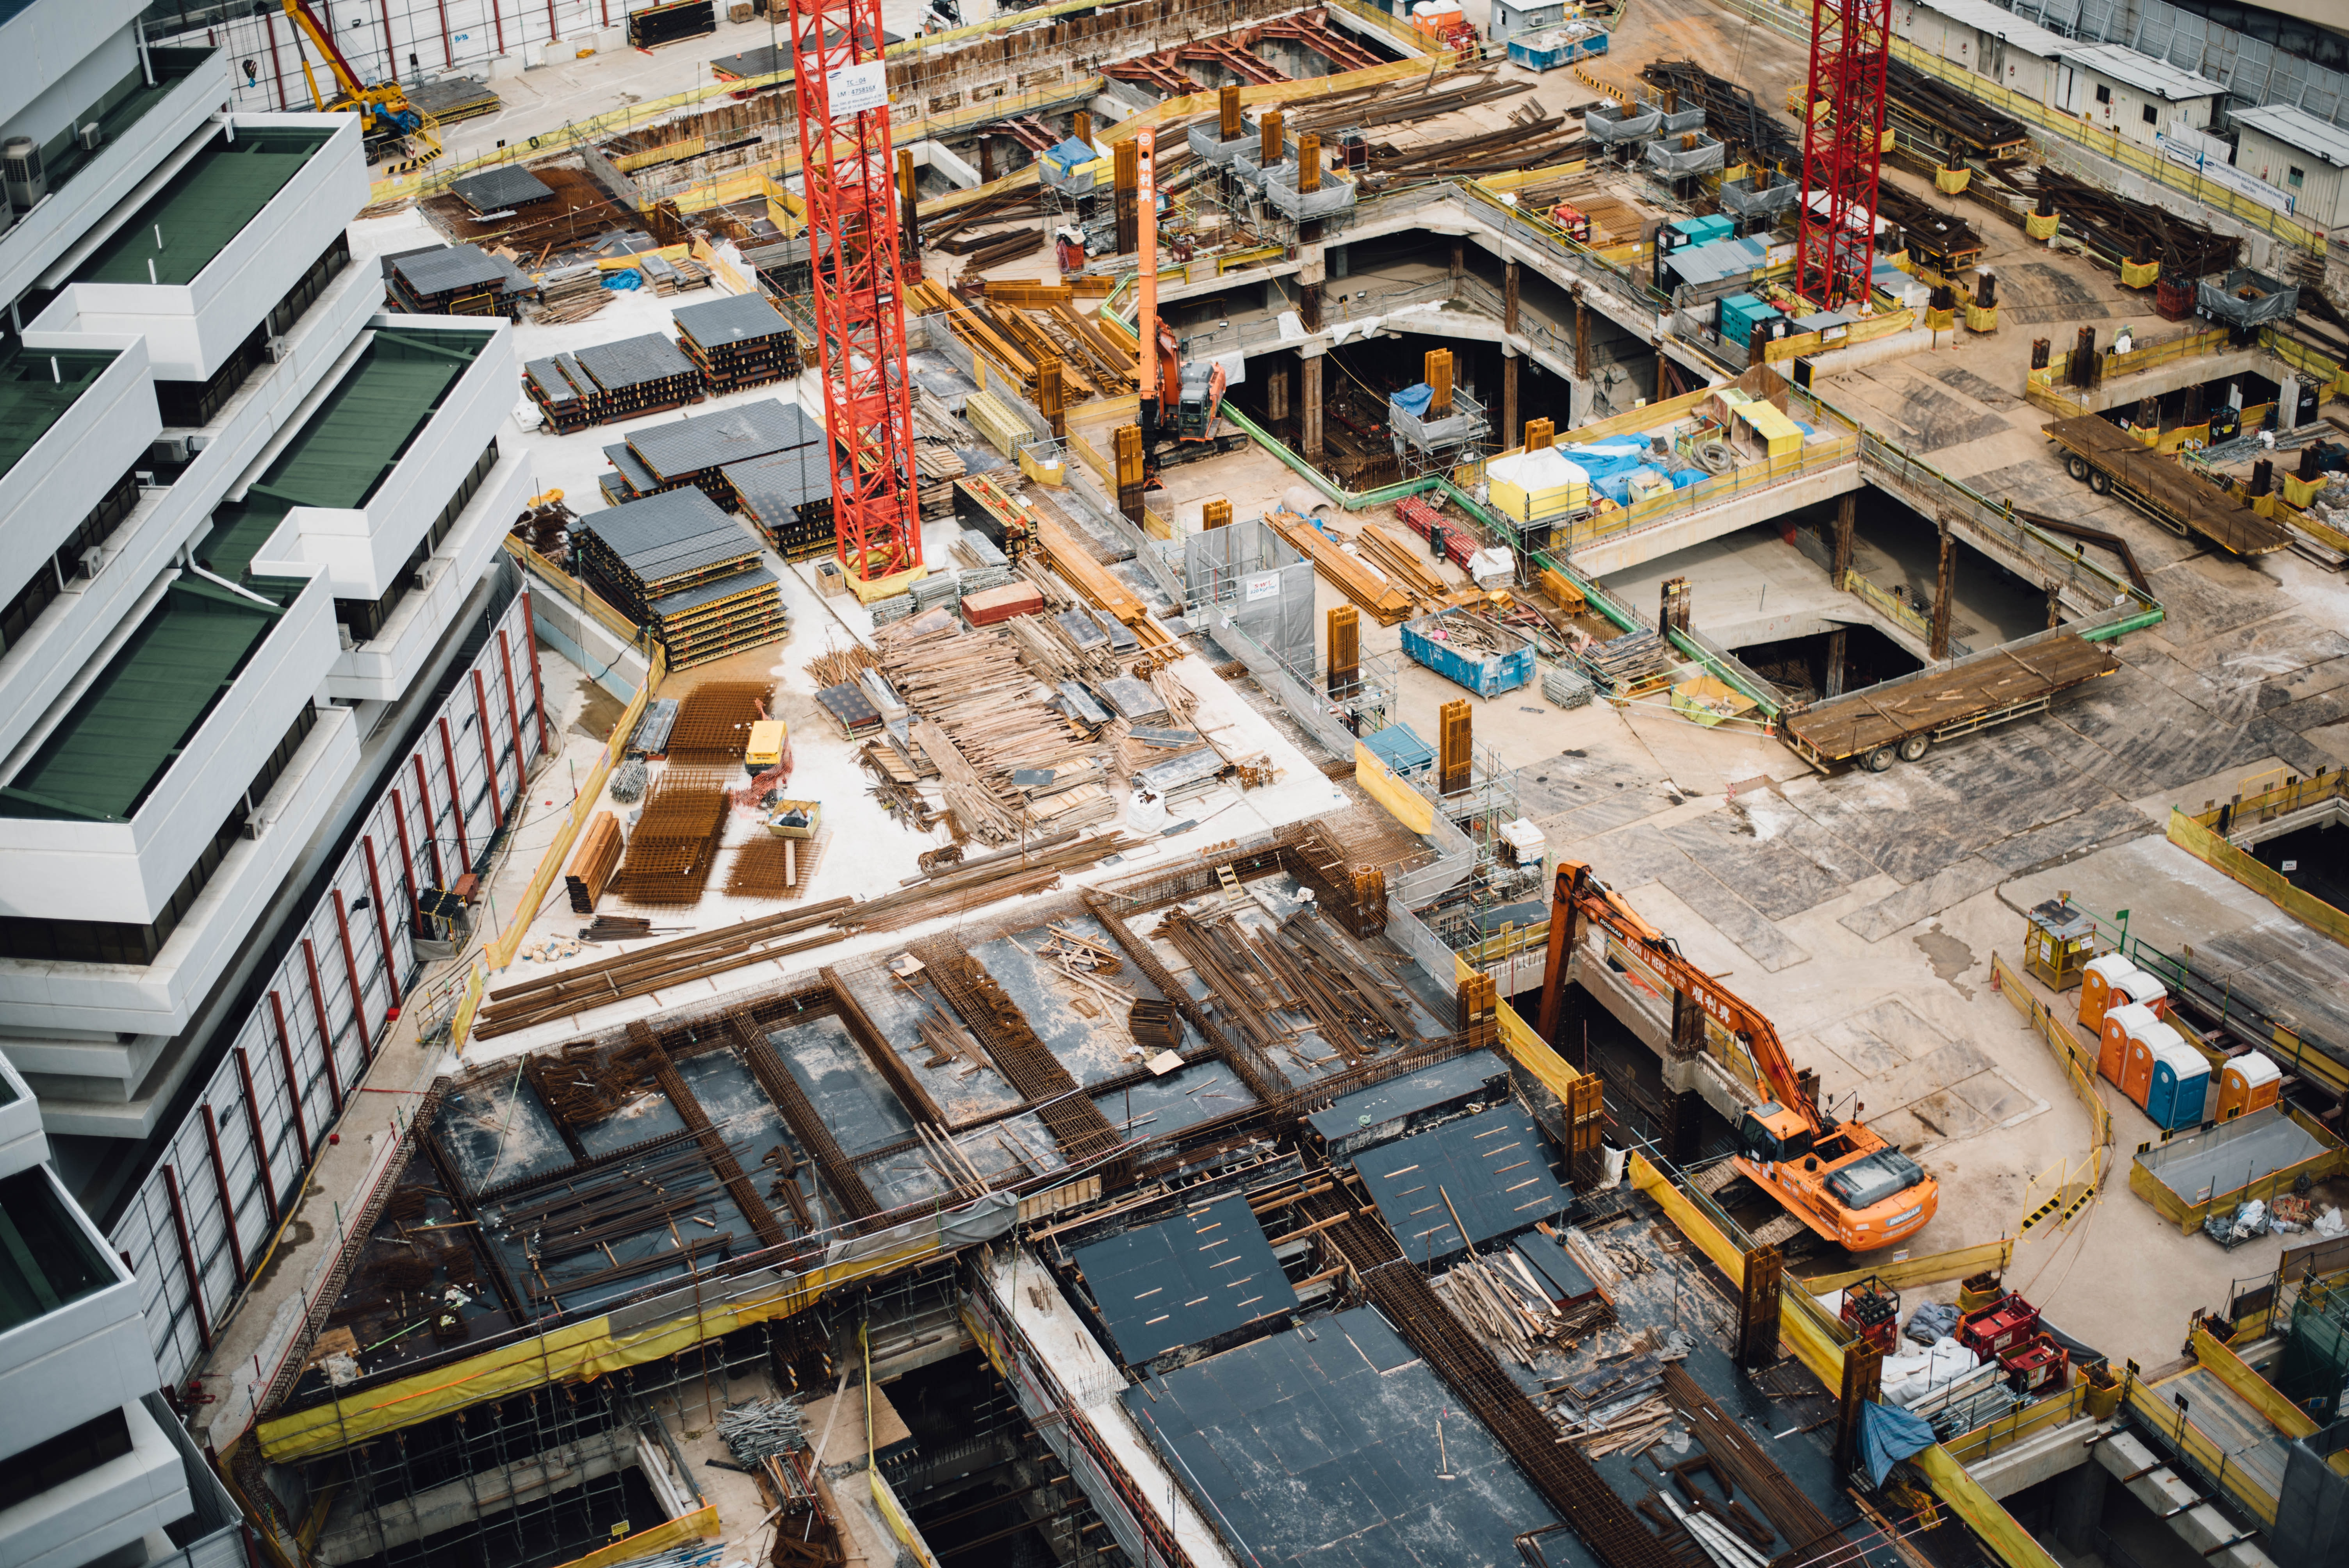 A view from above a construction site.